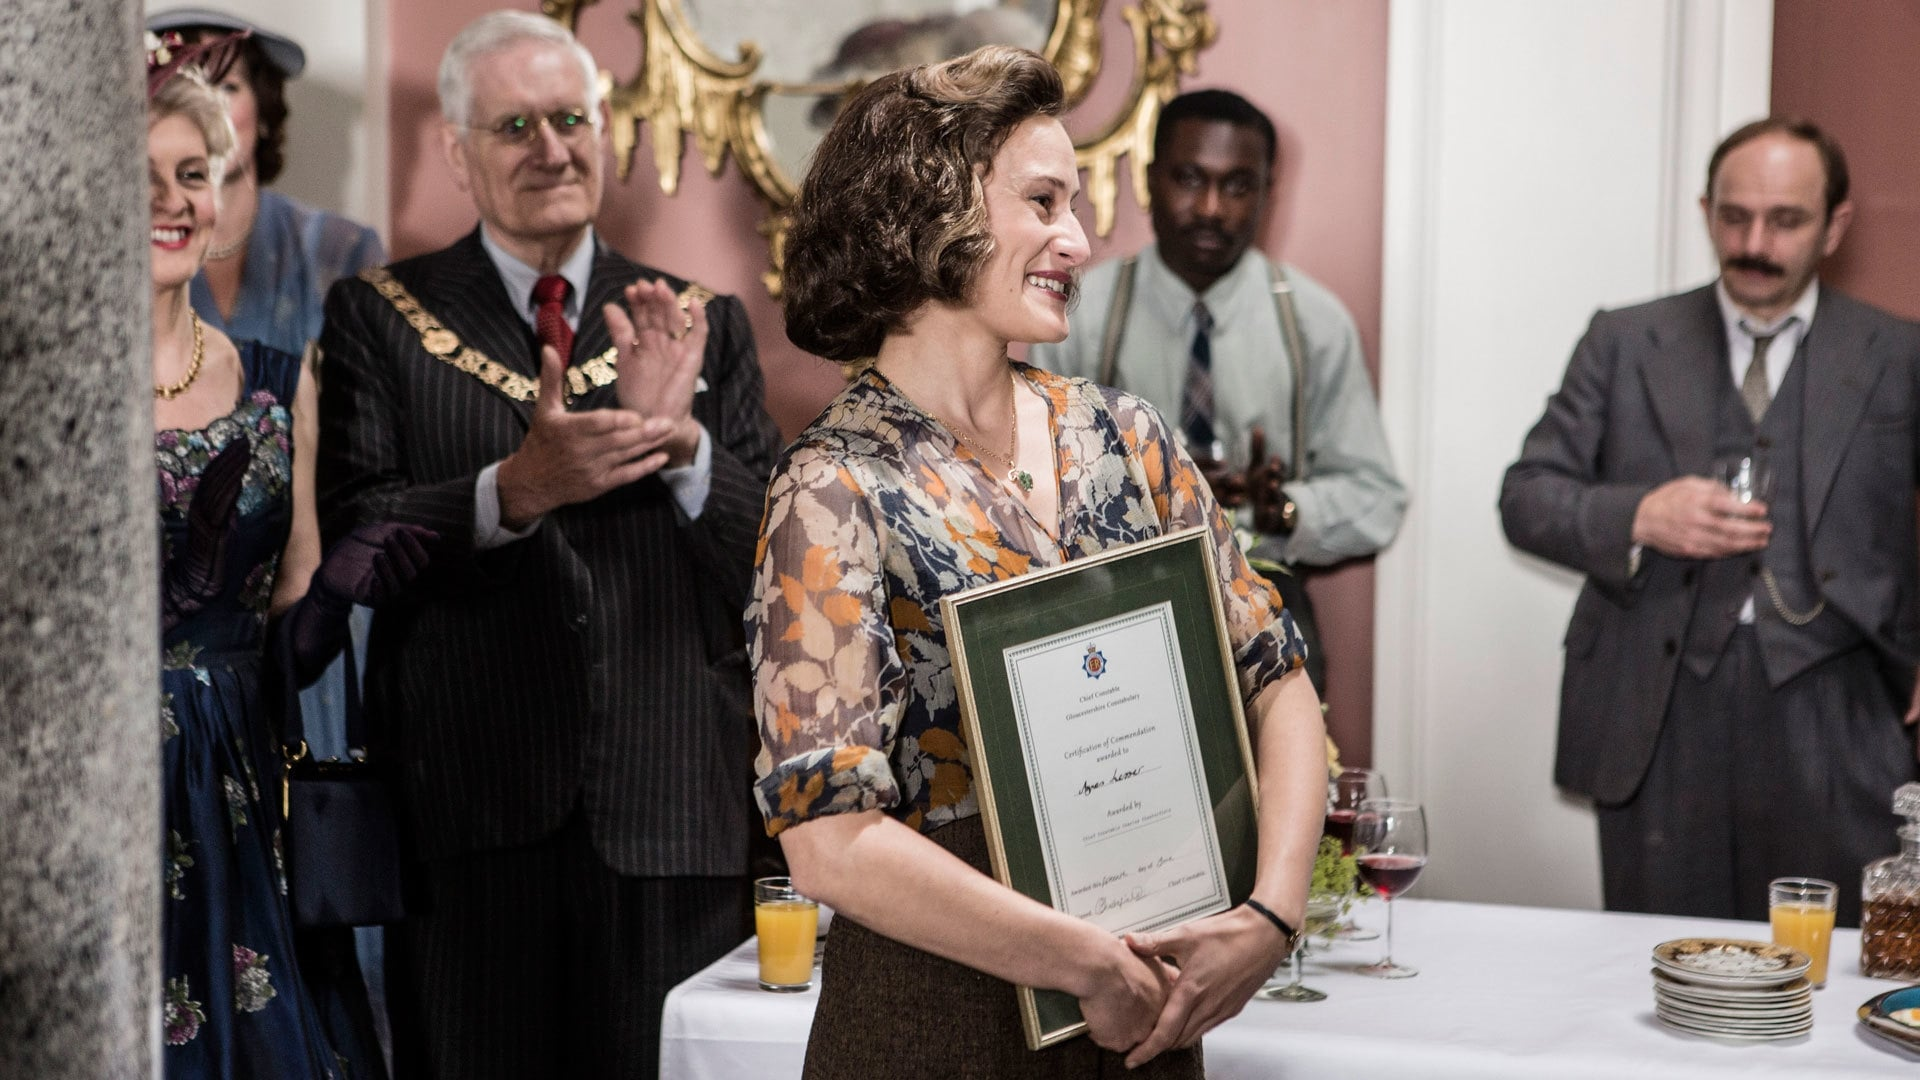 Father Brown - Season 5 Episode 7 : The Smallest of Things